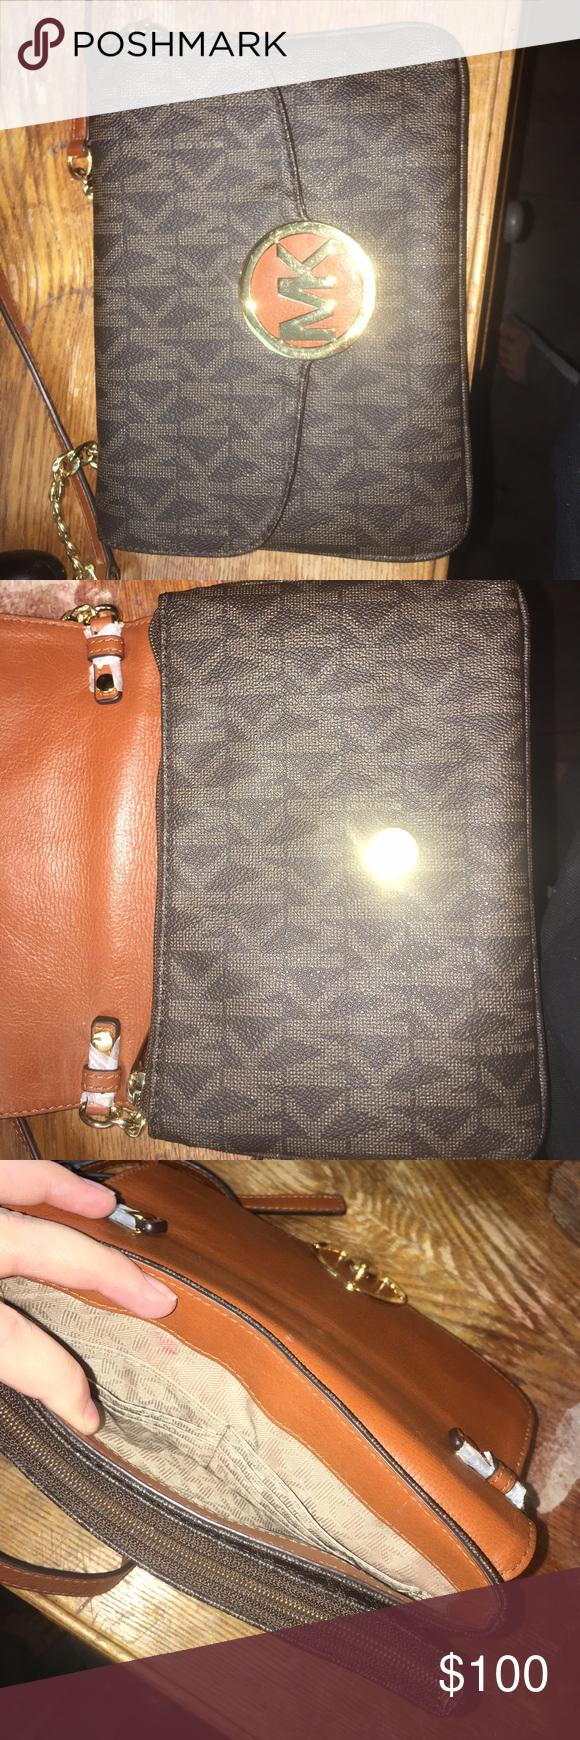 Michael kors cross body bag Like new , one little stain can be removed , comes with matching wallet no tears KORS Michael Kors Bags Crossbody Bags